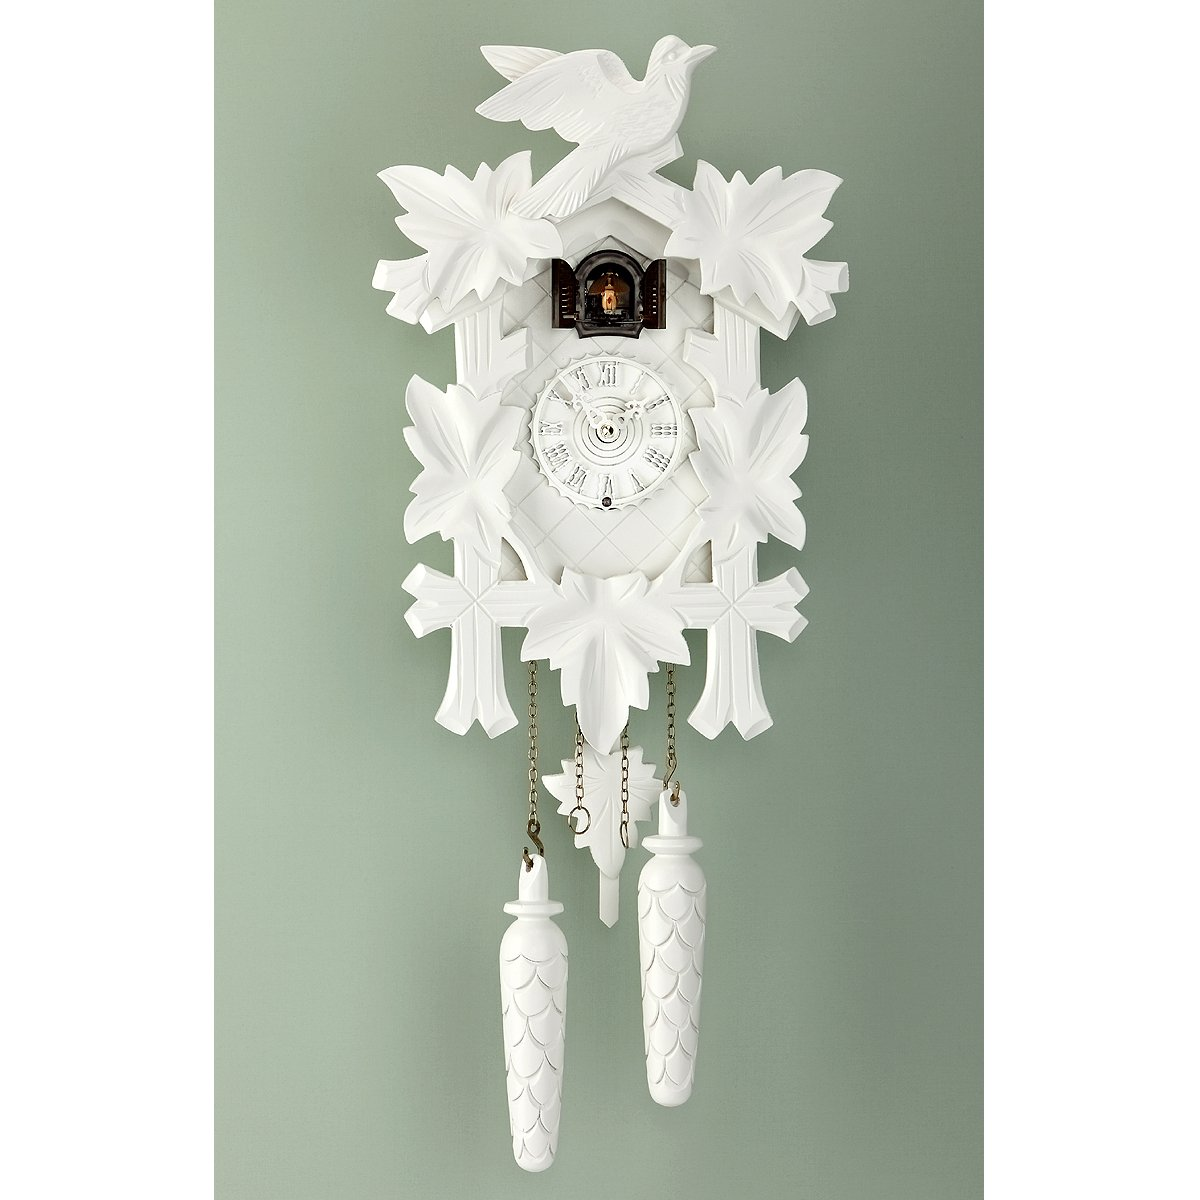 Cuckoo Clock 5 leaves, bird, incl. batteries       Customer reviews and more information